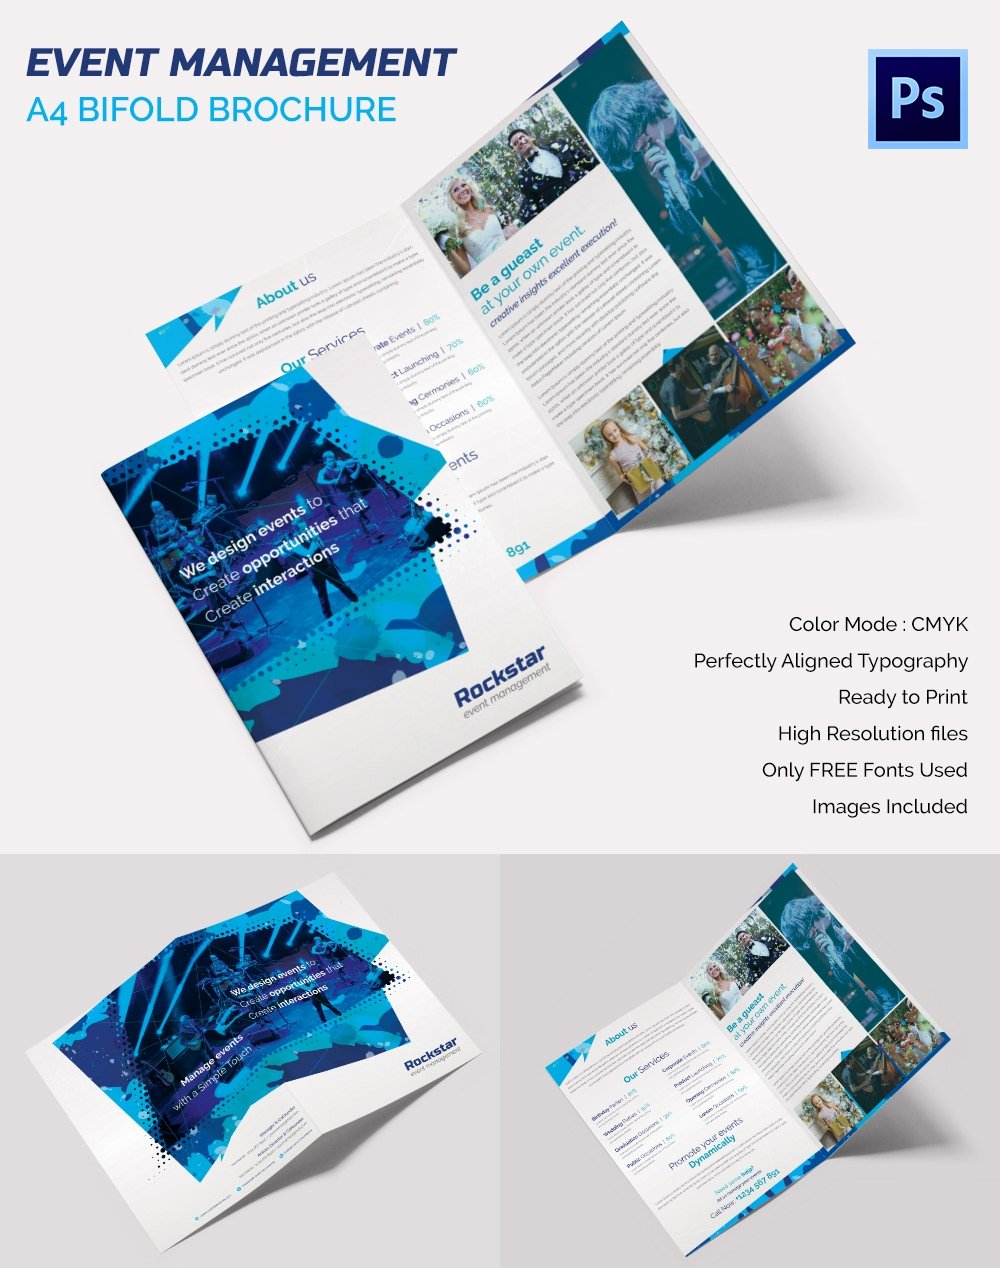 Wedding Brochure Template Free New 16 event Brochure Templates & Psd Designs